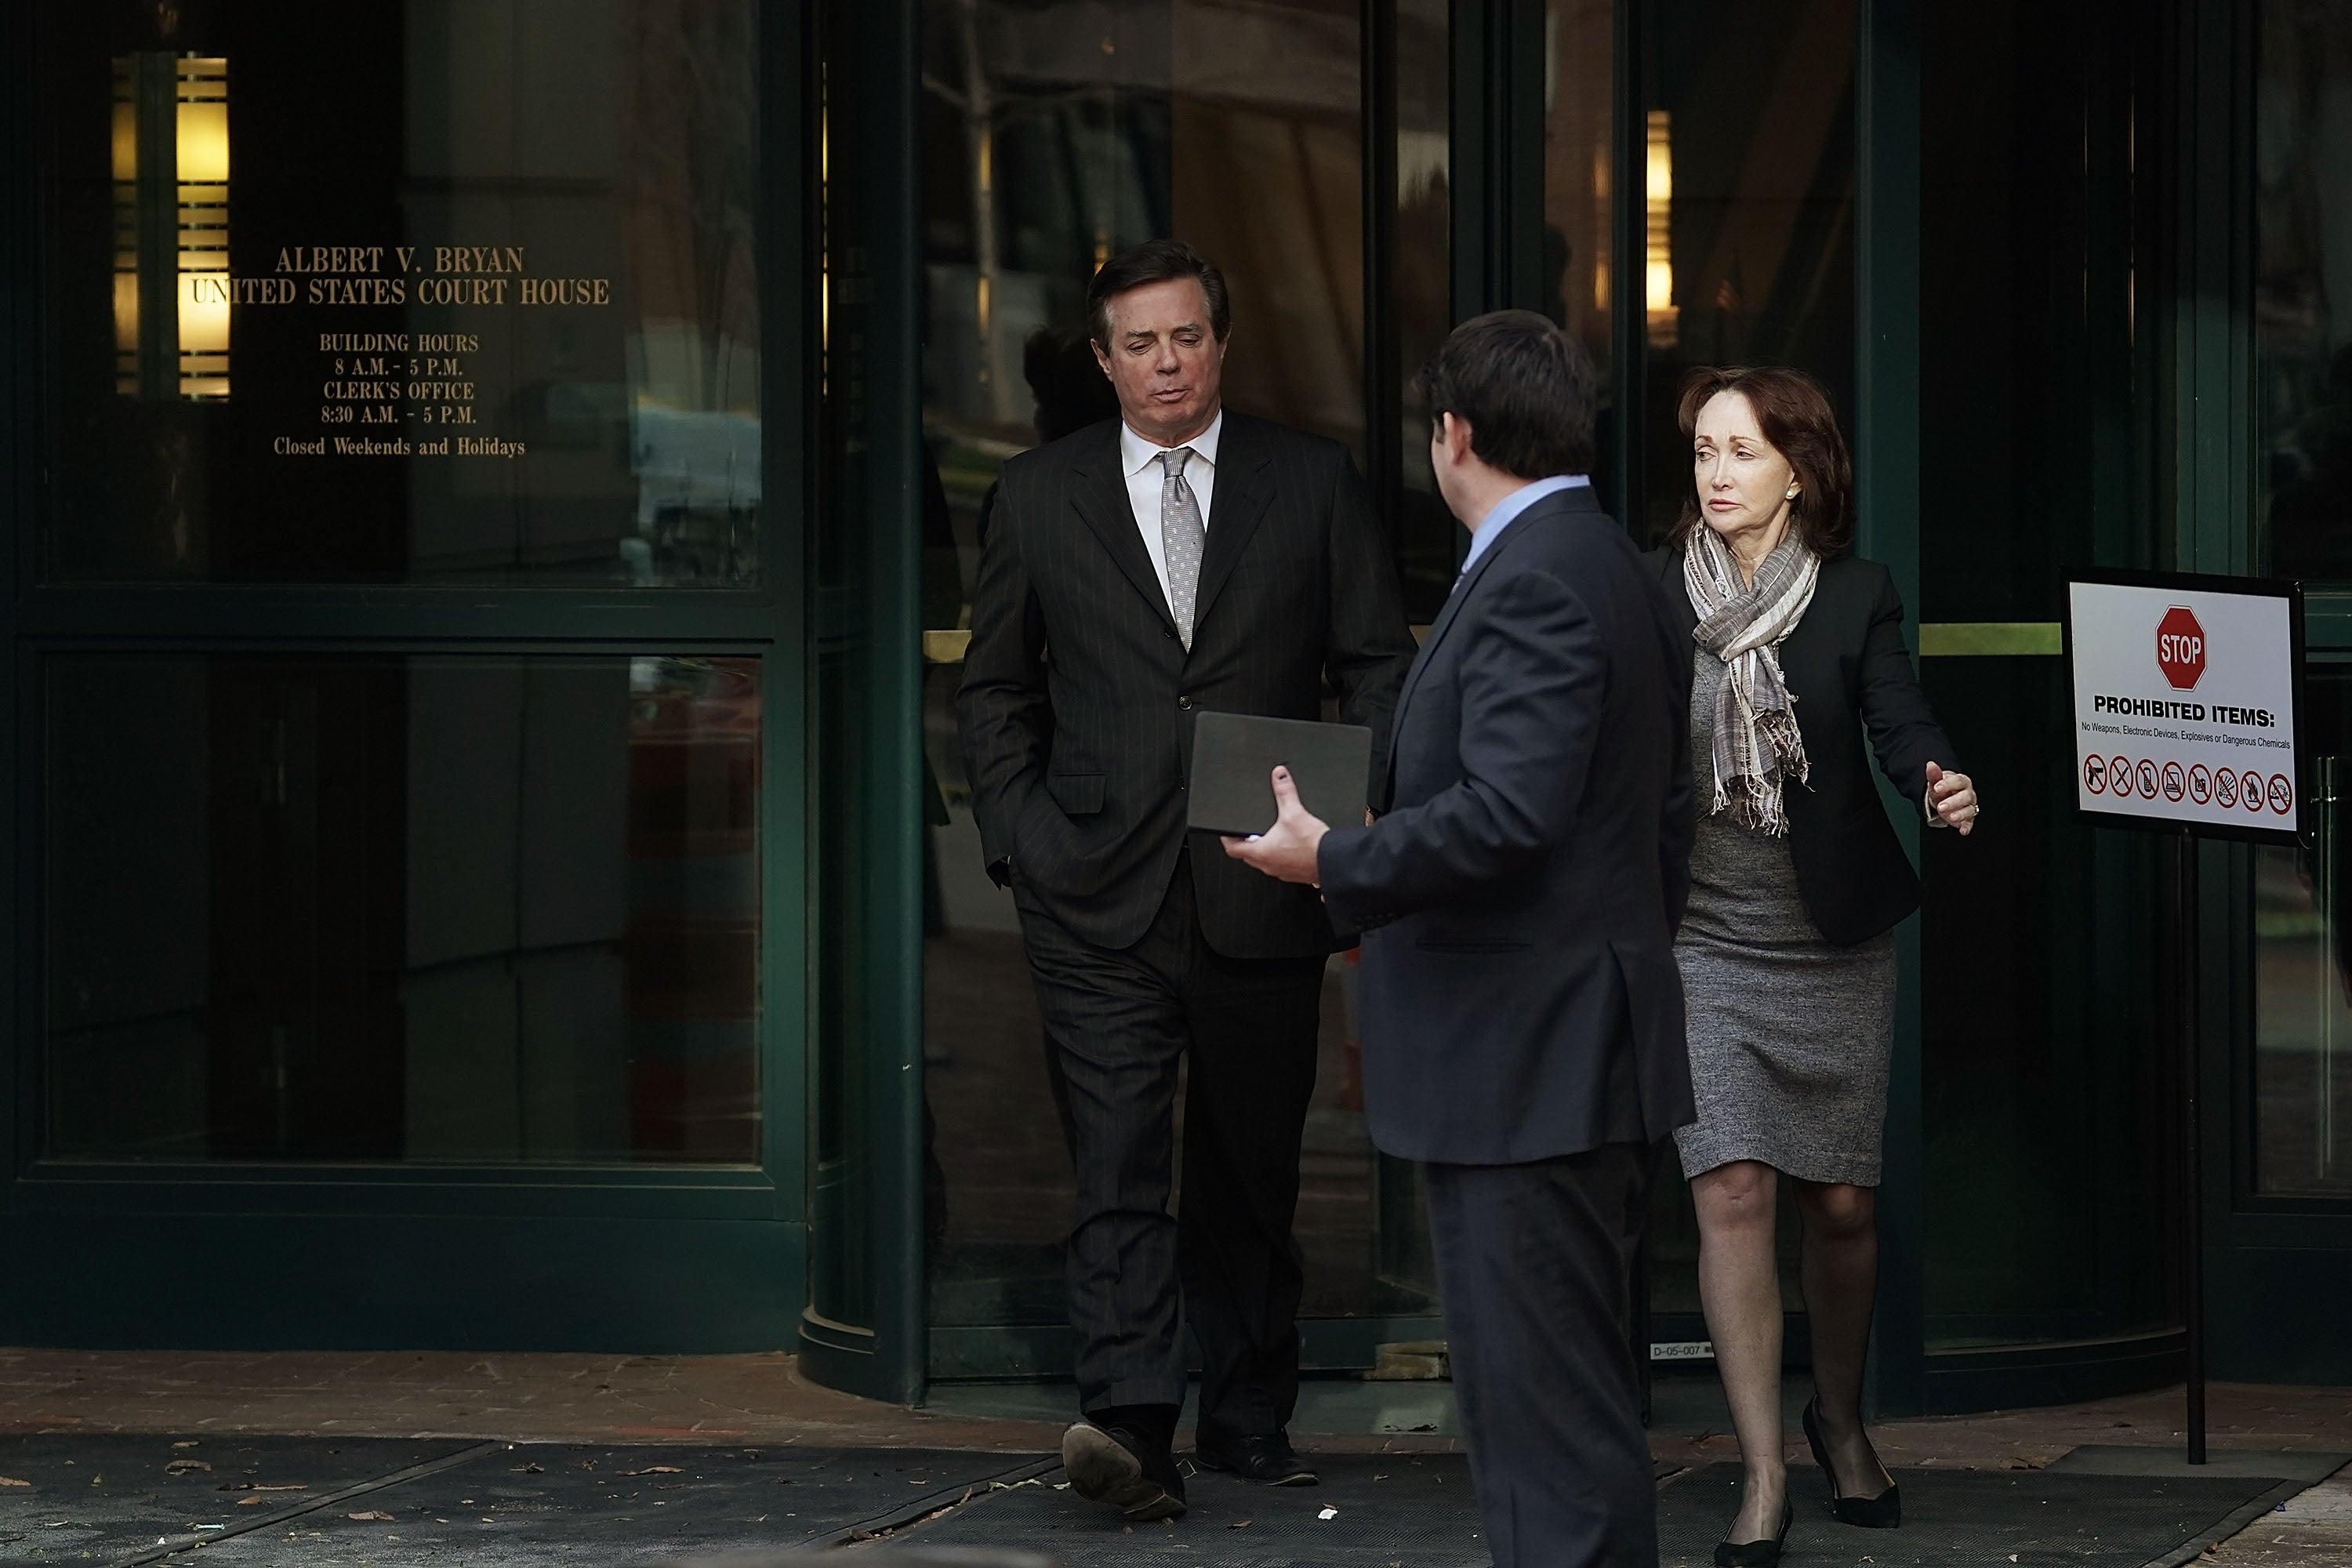 Paul Manafort exits a building through a revolving door.